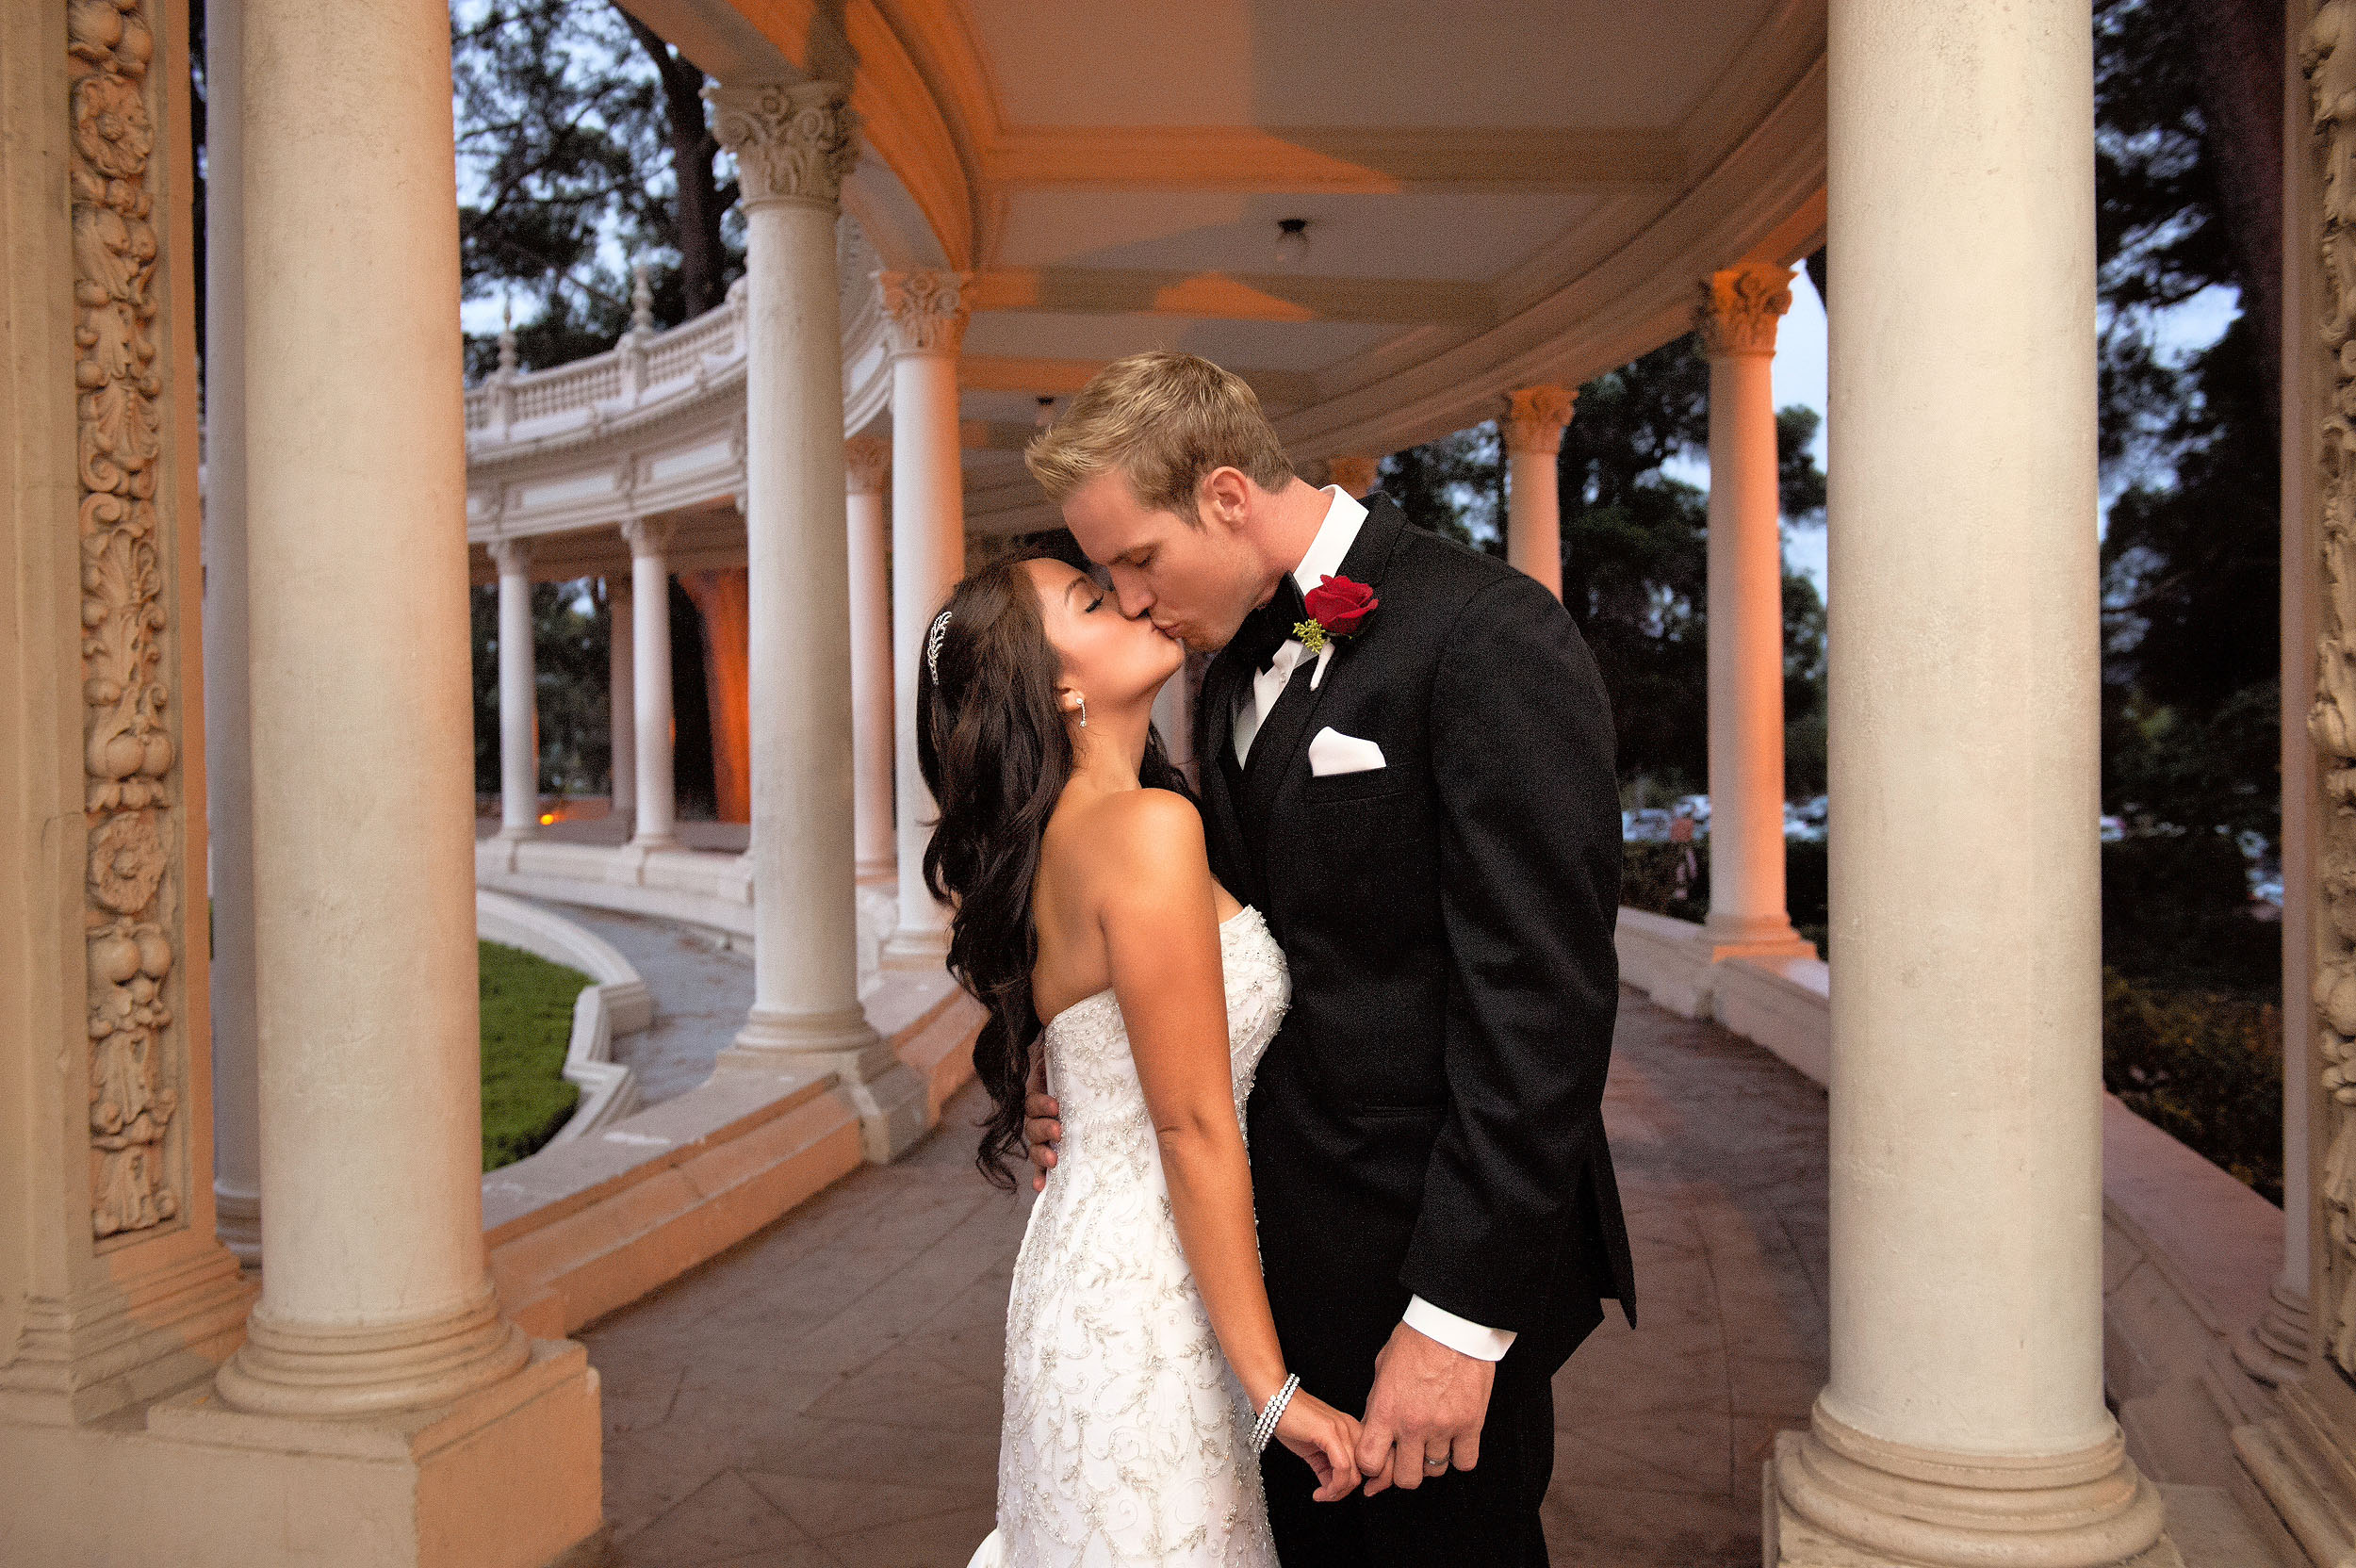 Bride and groom kissing at Balboa Park's Spreckels Theatre in San Diego.